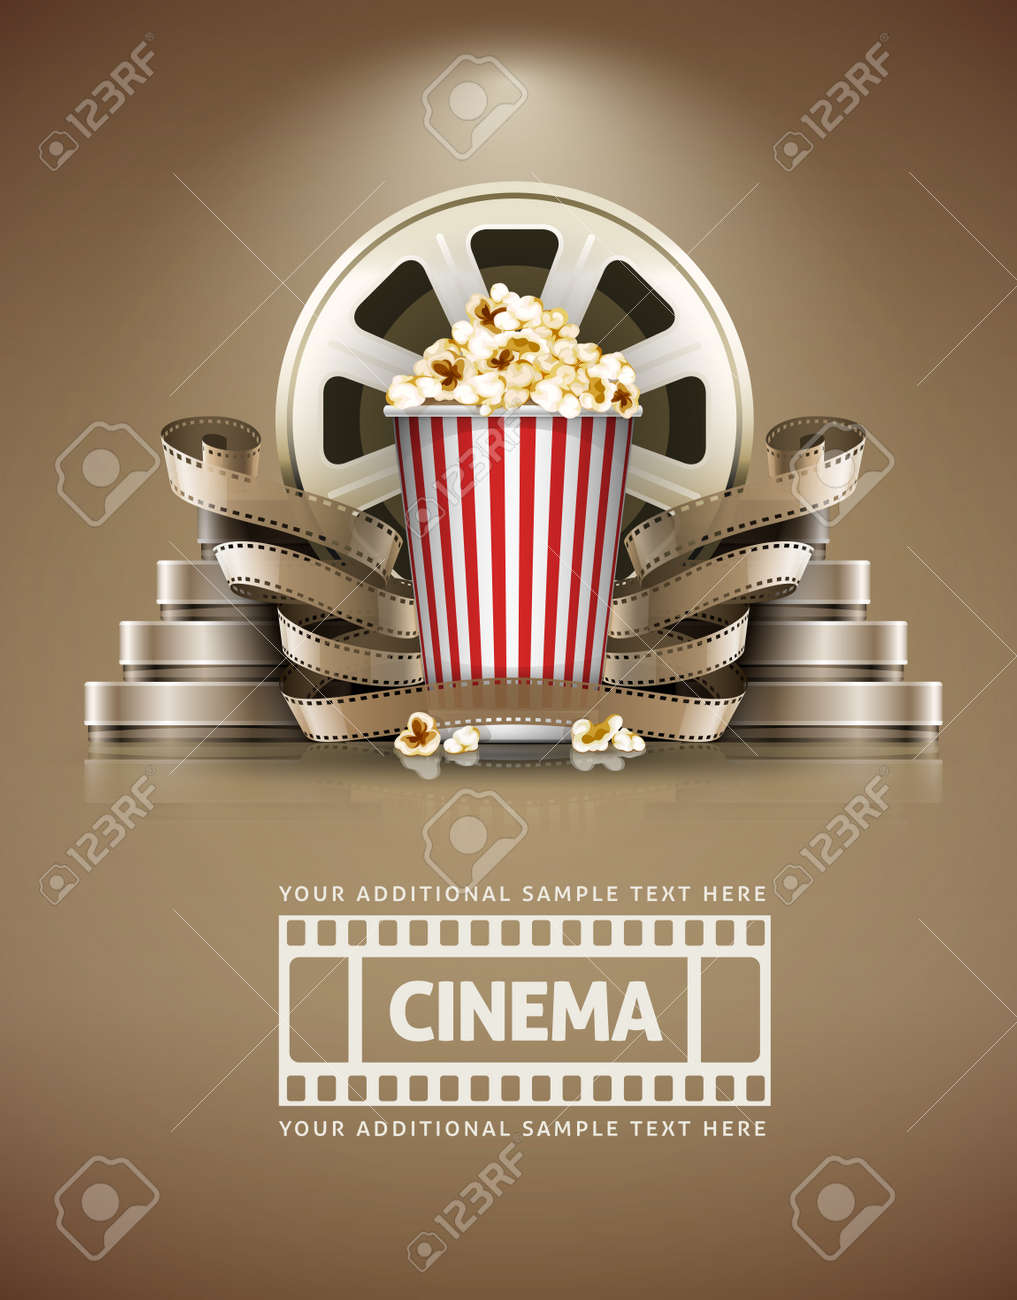 Cinema concept with popcorn and cinefilmss retro style. Stock Vector - 34492604